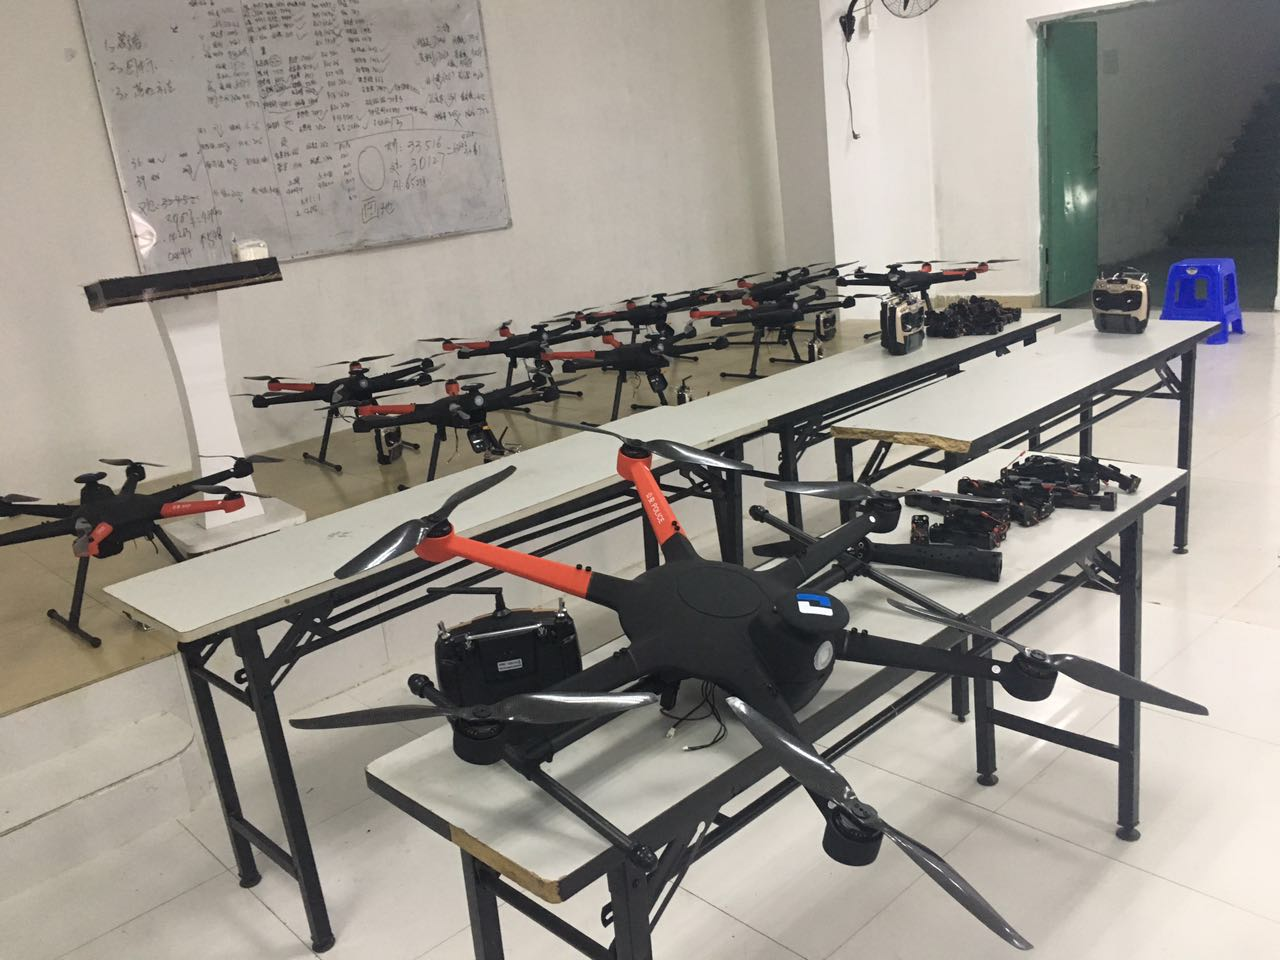 Commercial Drone Frame